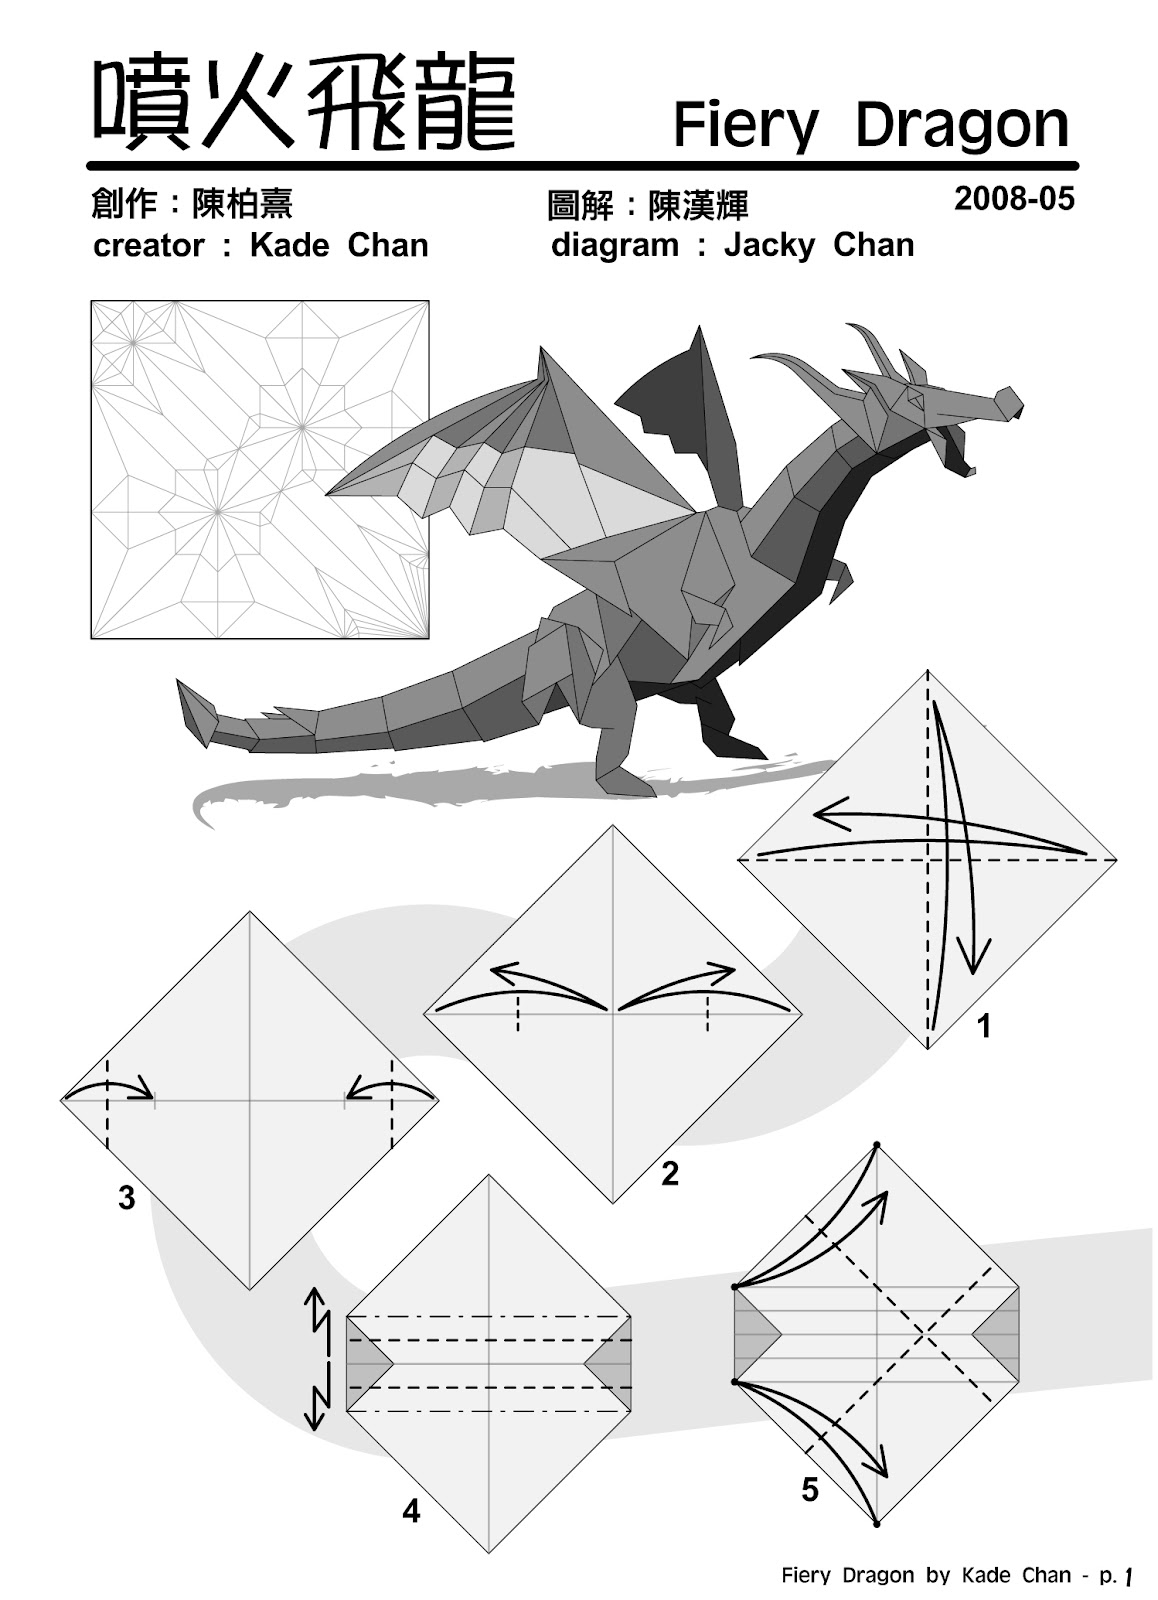 origami diagram com 2002 jeep wrangler fuse box kade chan blog 香港摺紙工作室 日誌 fiery dragon